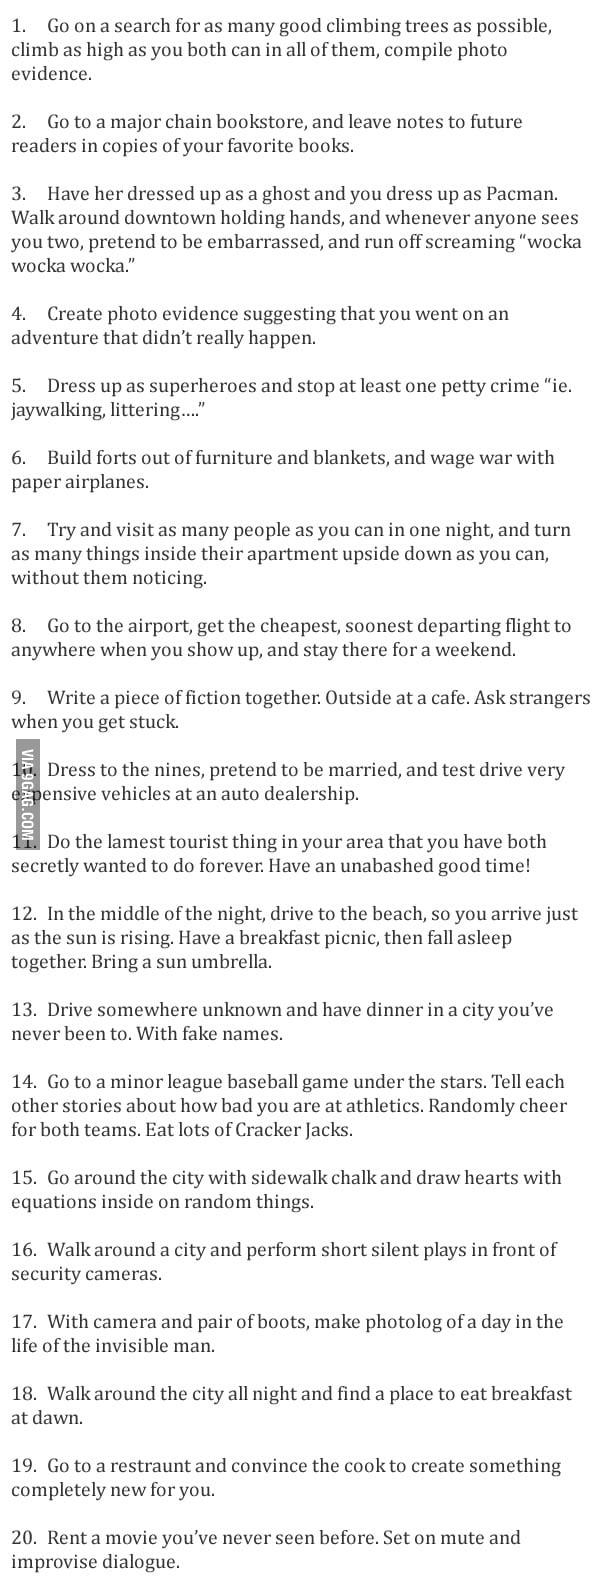 Unusual (and fun!) Date Ideas